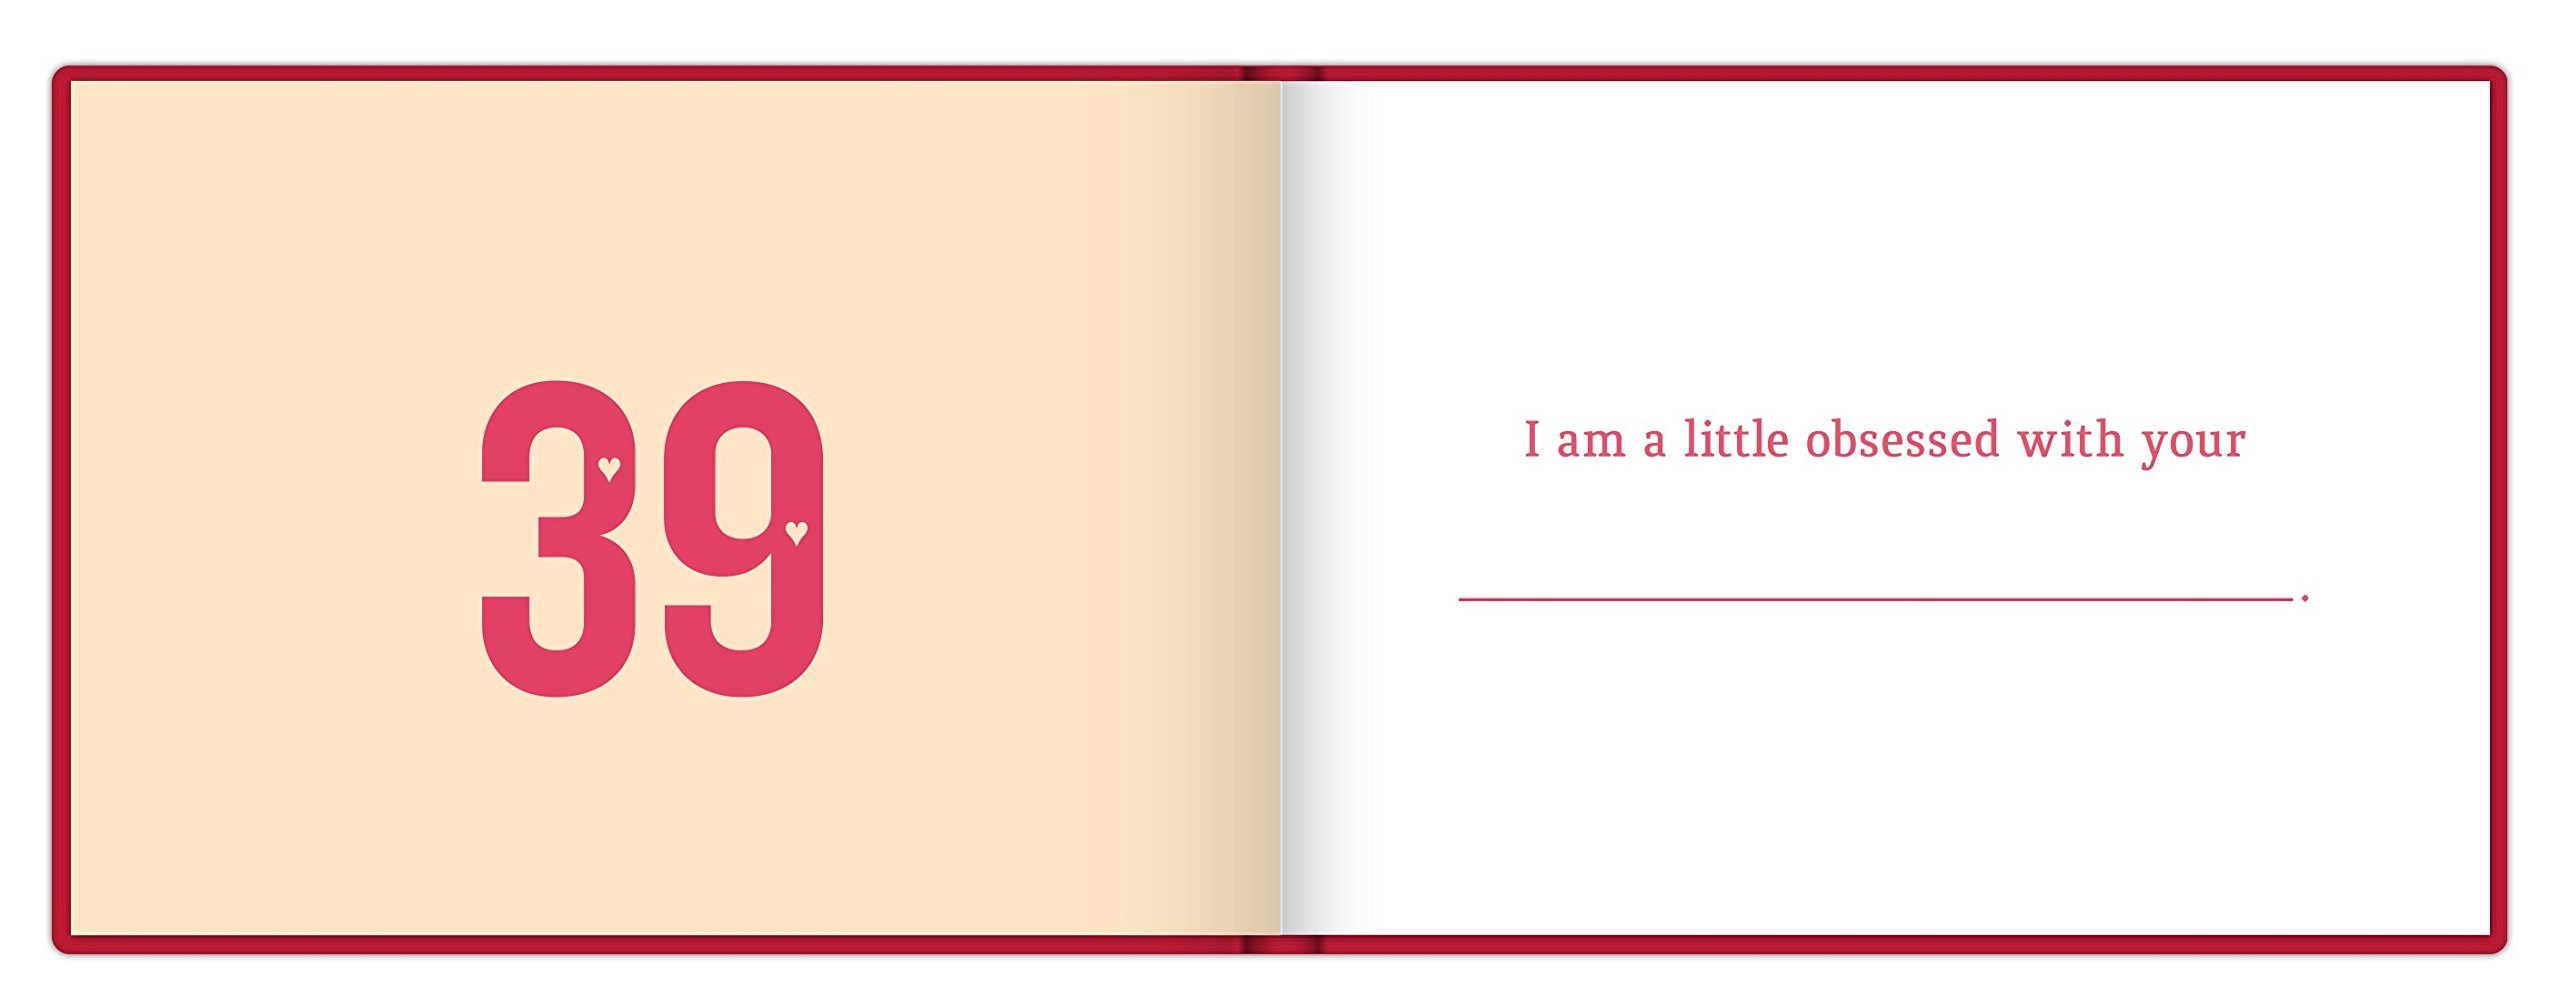 Knock Knock Why I'm Crushing on You Fill in the Love Journal by Knock Knock (Image #5)